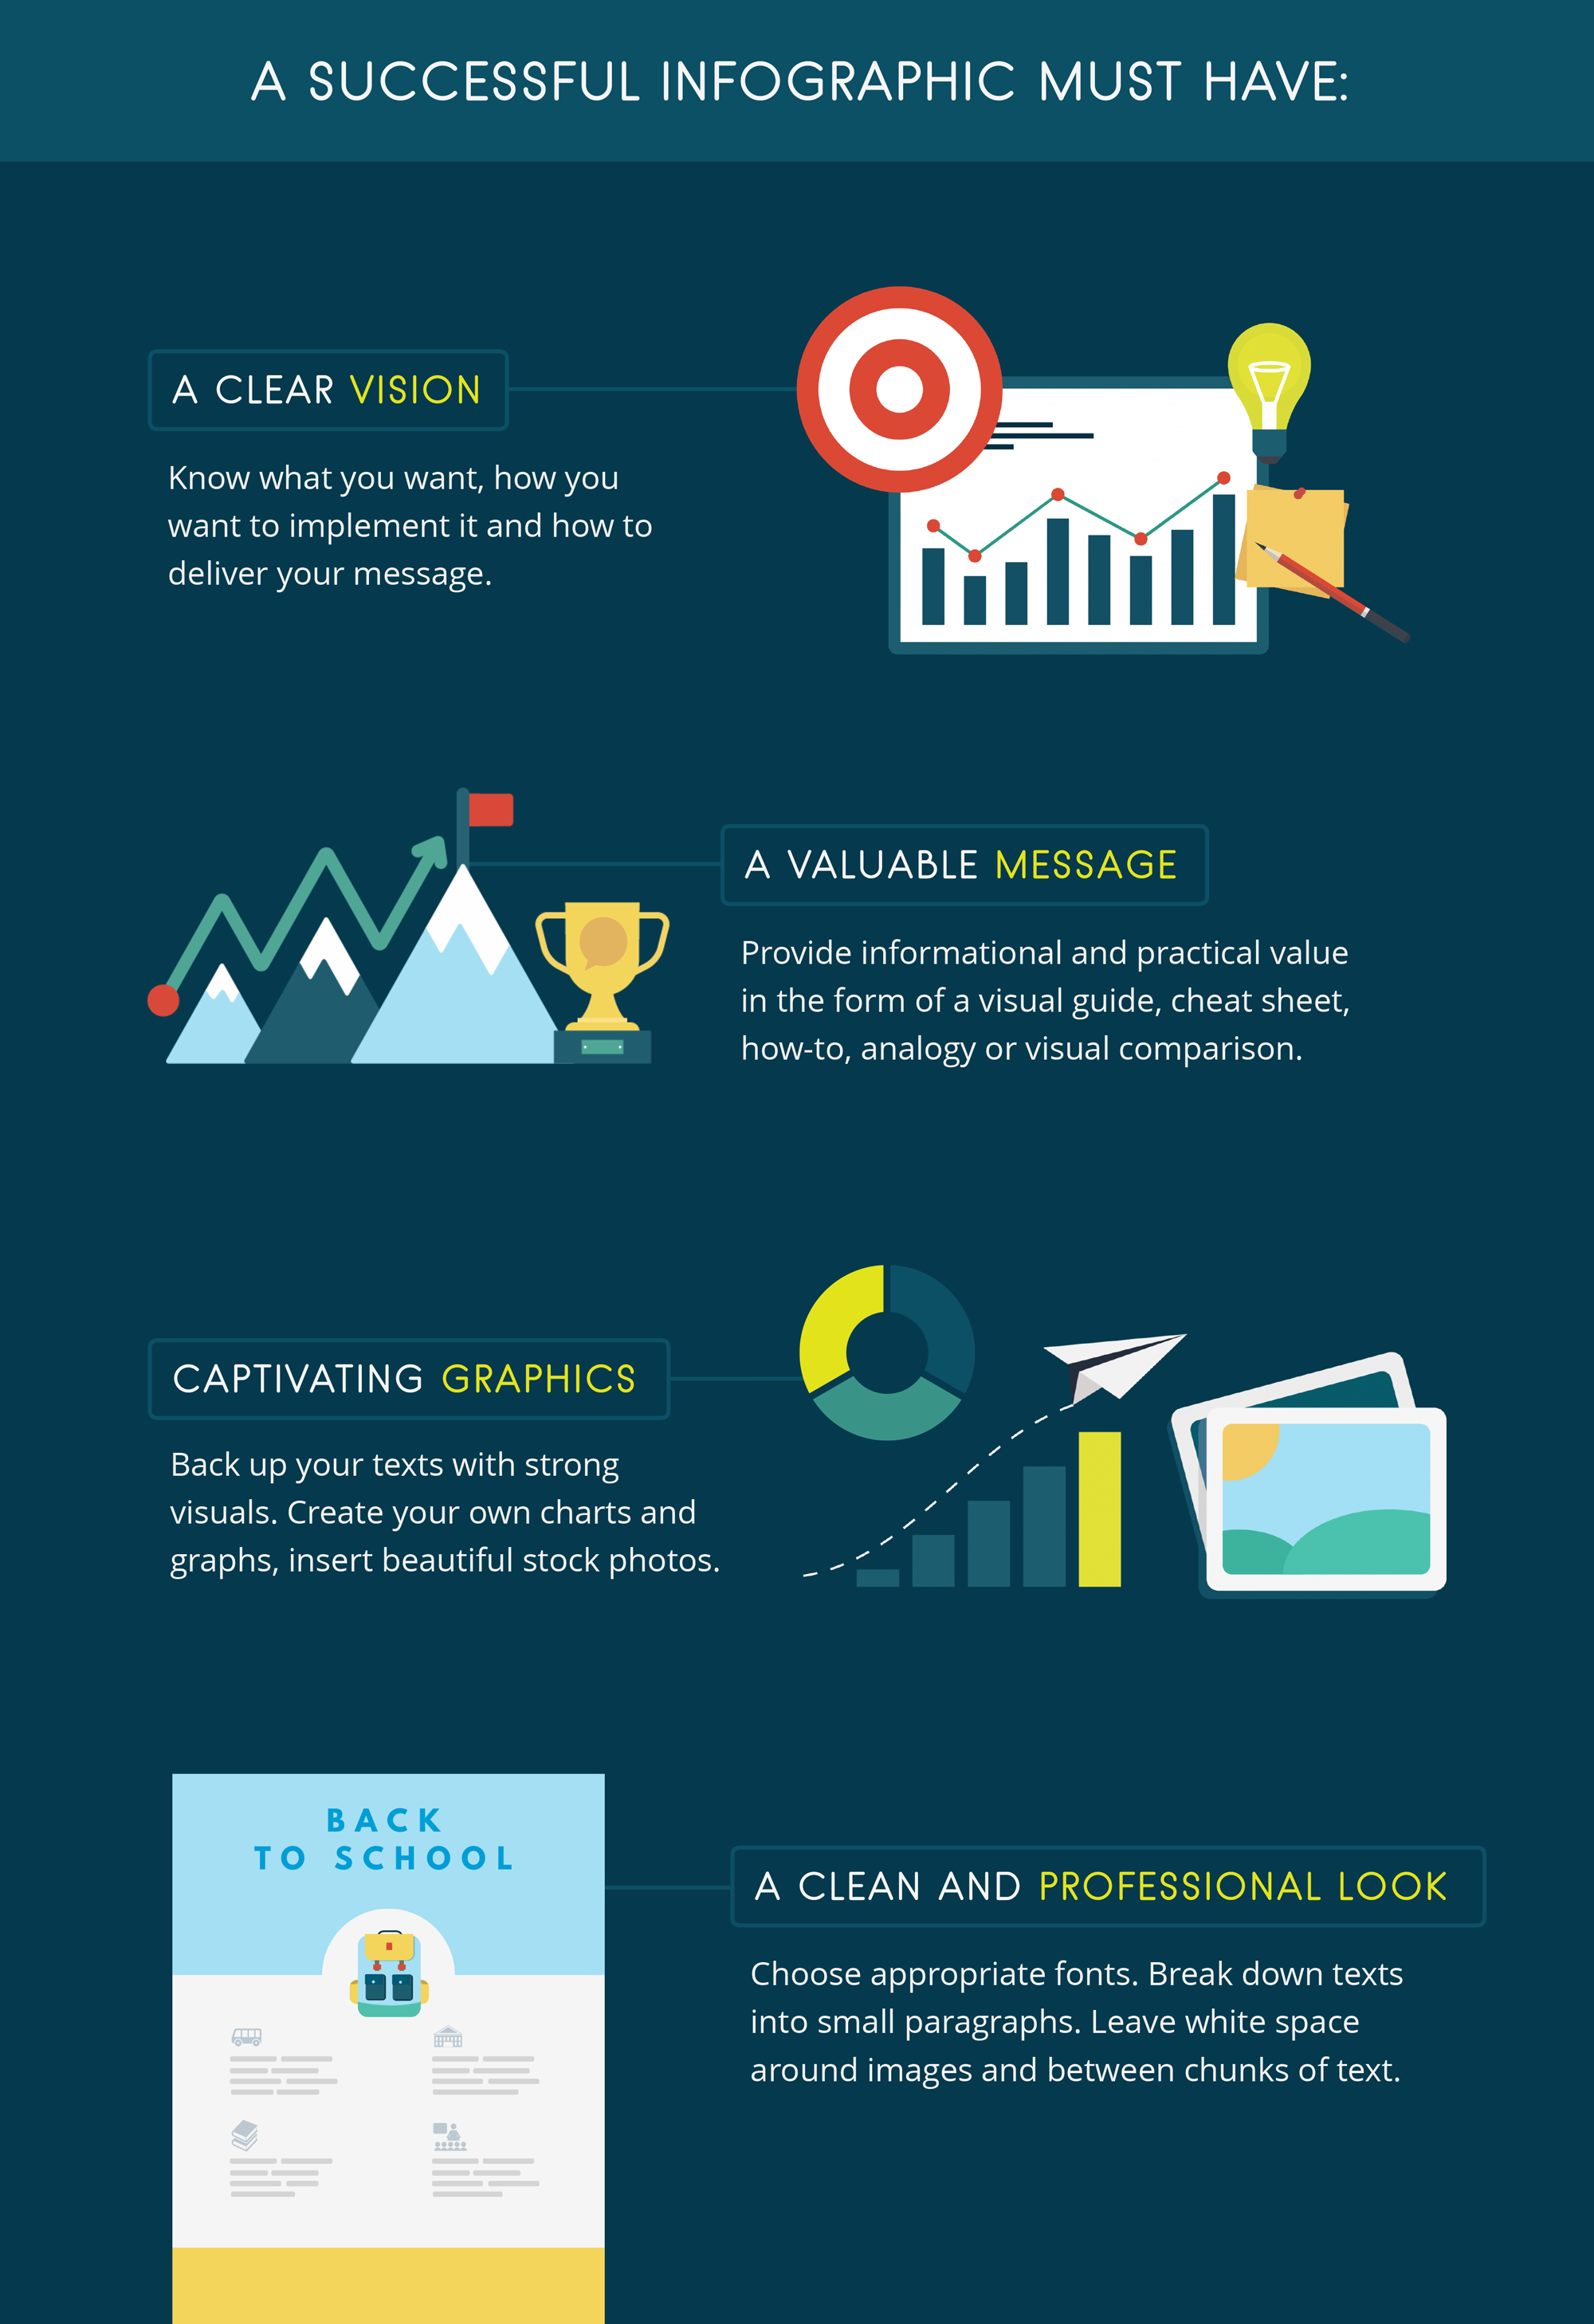 branding infographic 7 tips to keep your infographics on brand